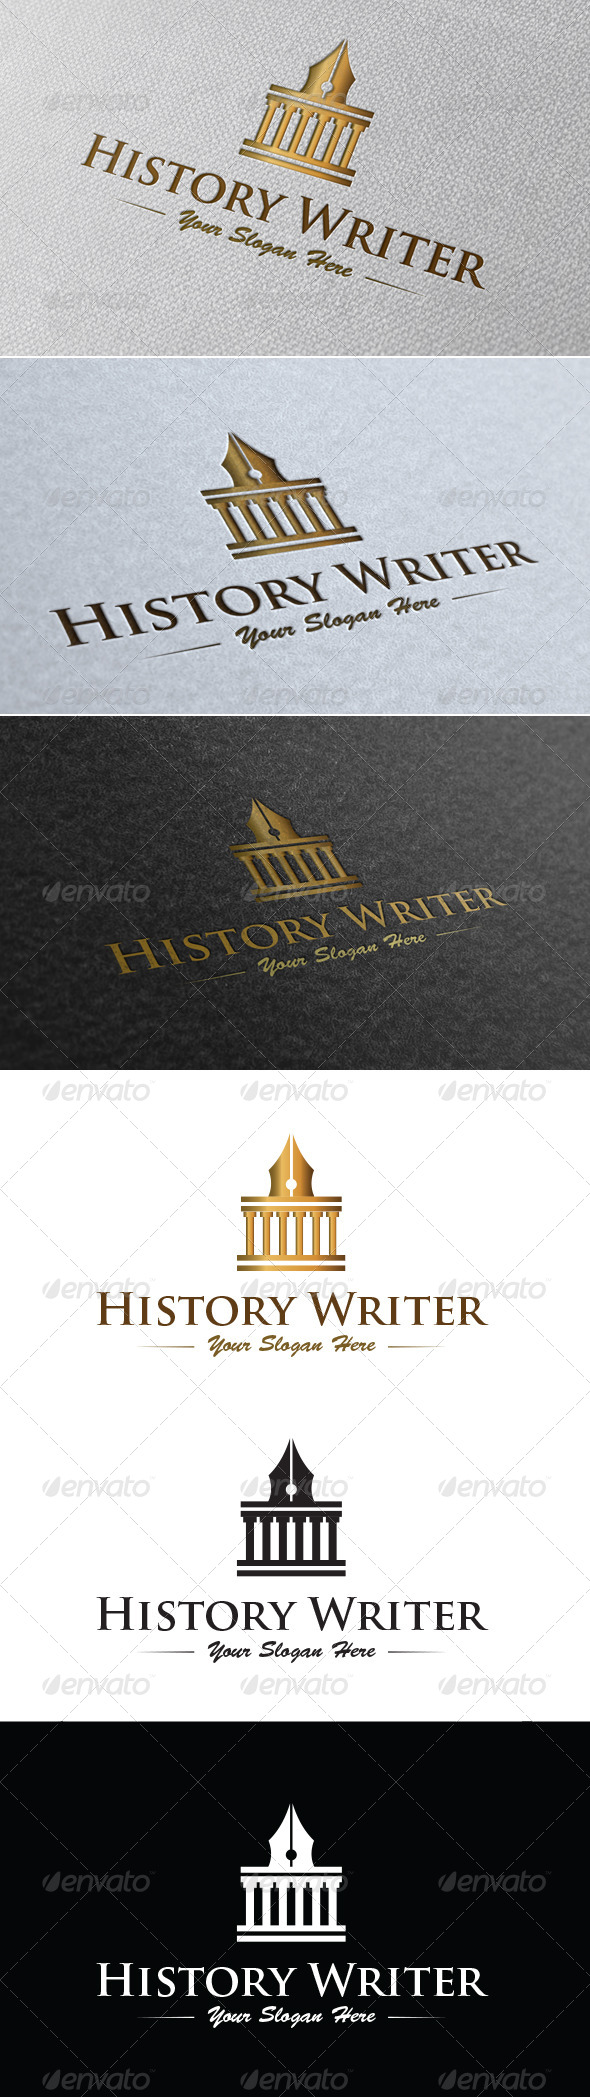 History Writer Logo Template - Buildings Logo Templates